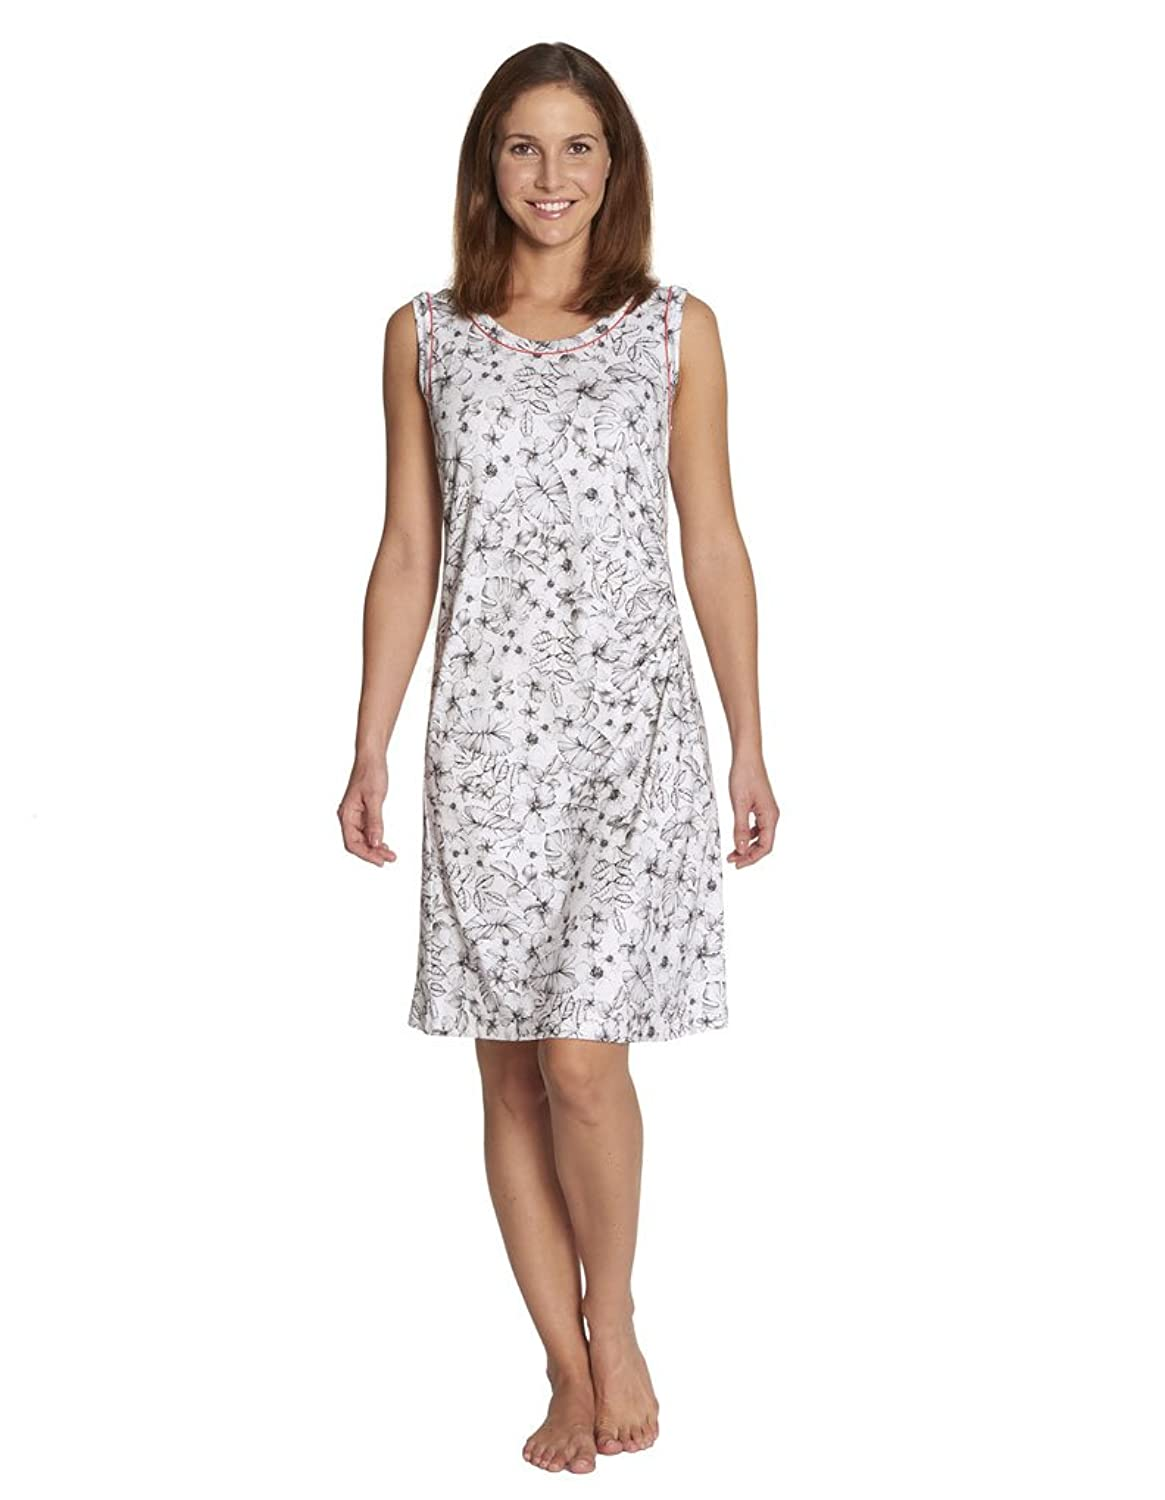 Rosch 1175559-10222 Women's White and Black Floral Beach Dress Cover Up